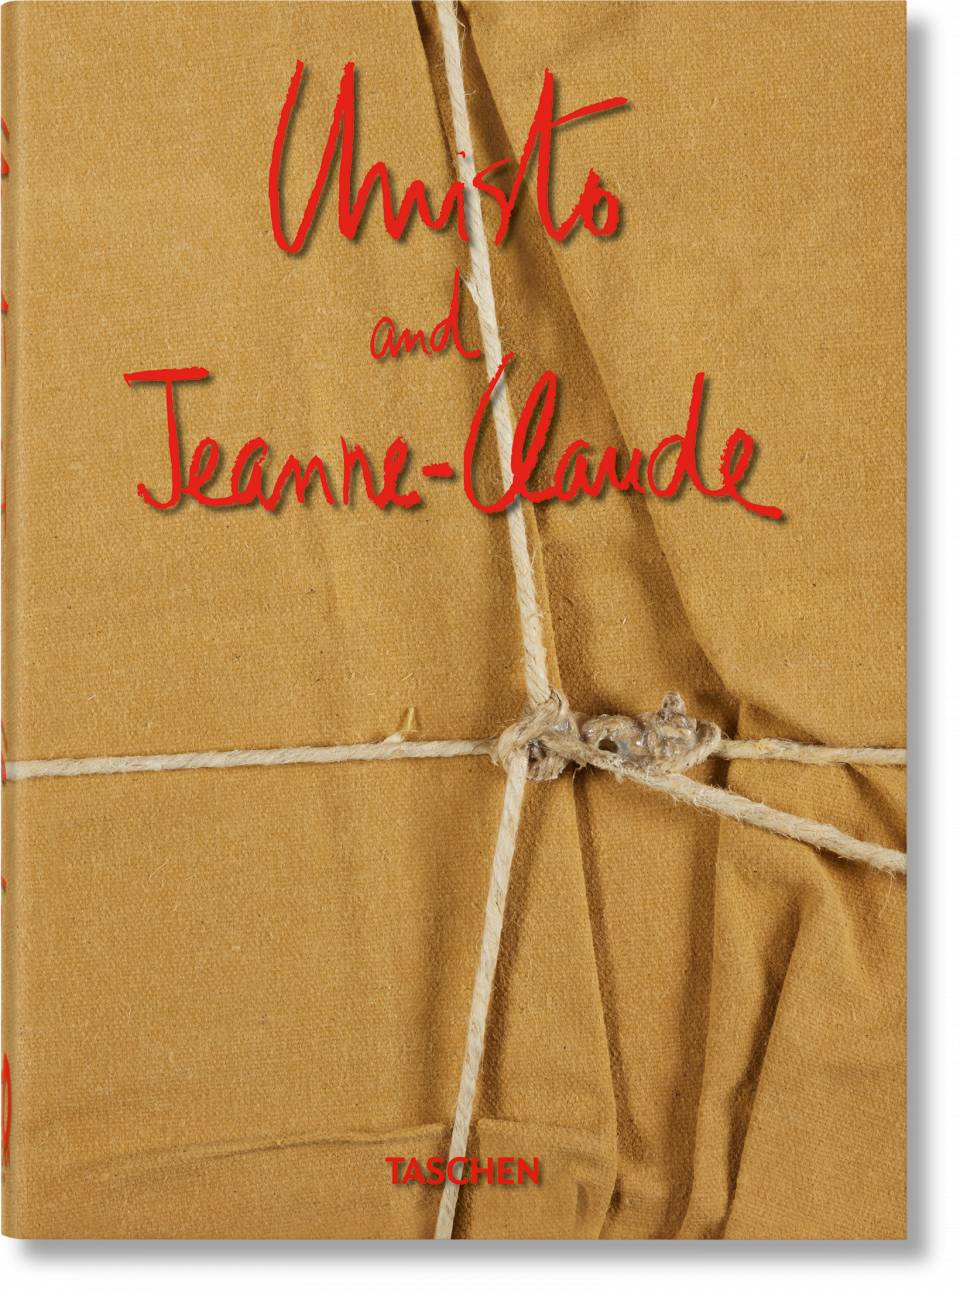 Christo and Jeanne-Claude. 40th Ed. - image 1